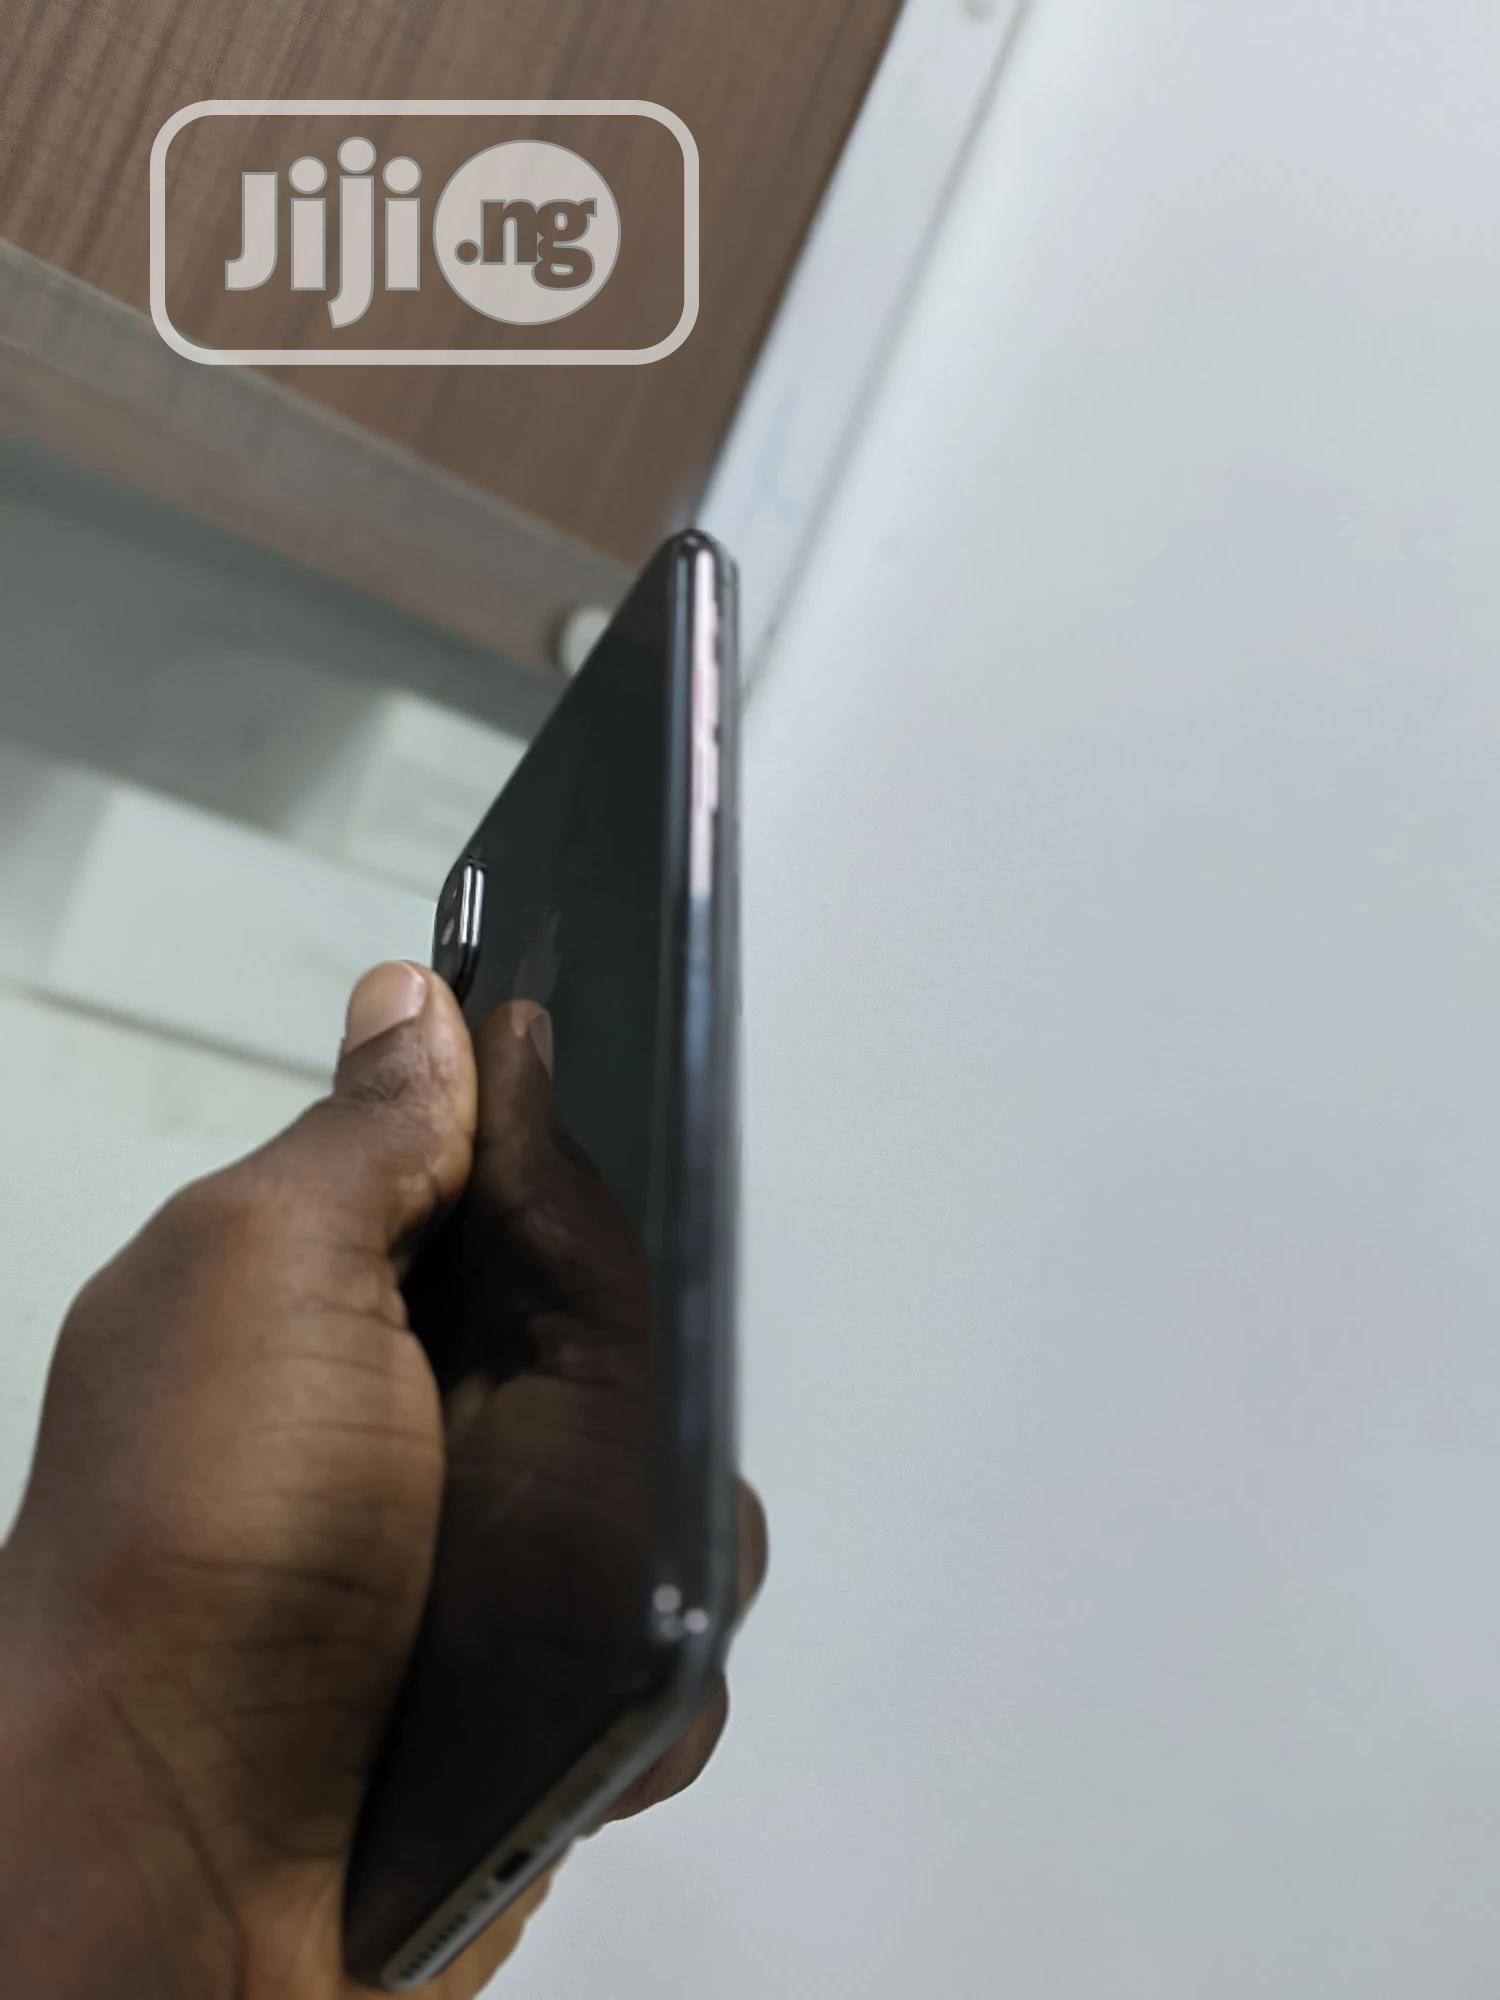 Apple iPhone XS Max 256 GB Black | Mobile Phones for sale in Ikeja, Lagos State, Nigeria